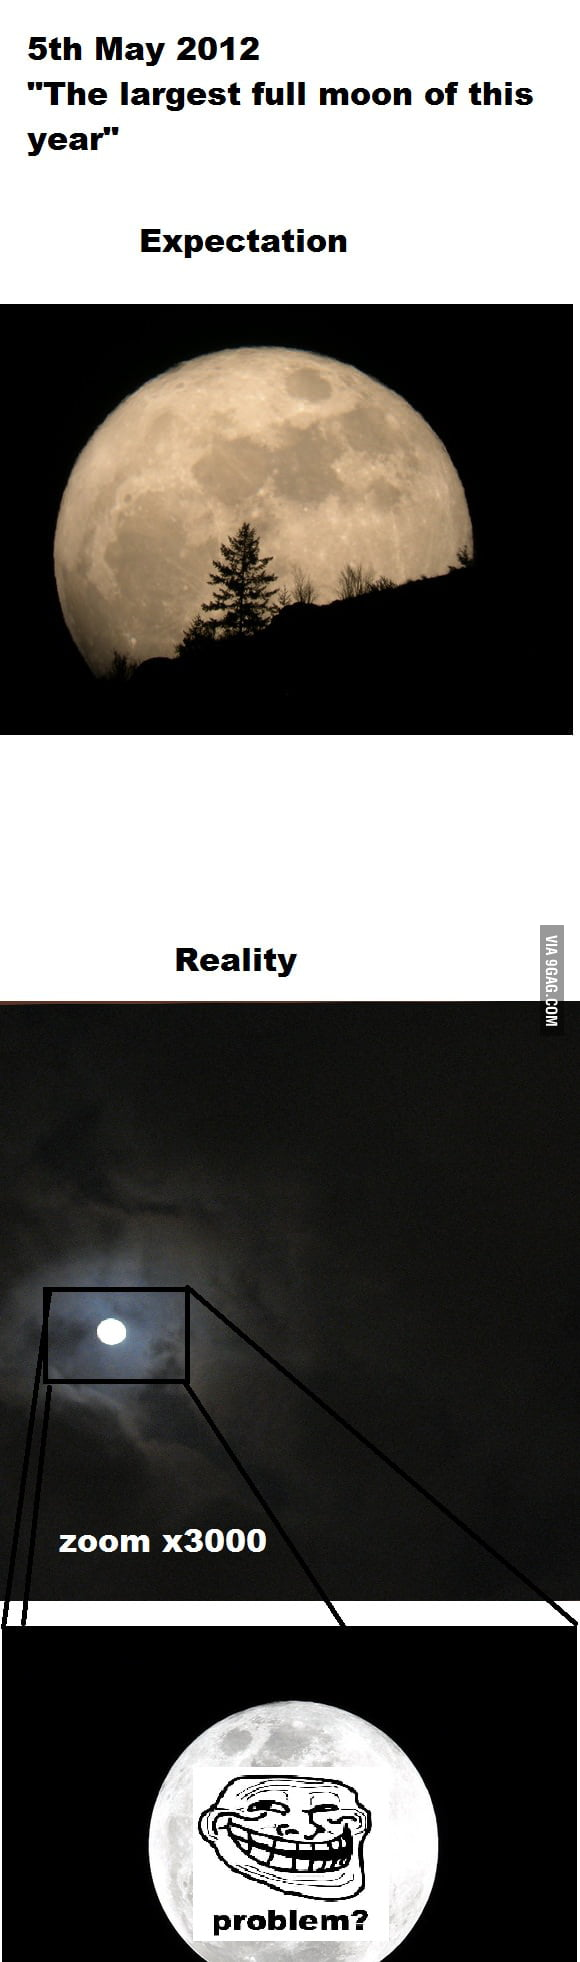 funny moon jokes and pictures moon myths funny jokes - 580×1962